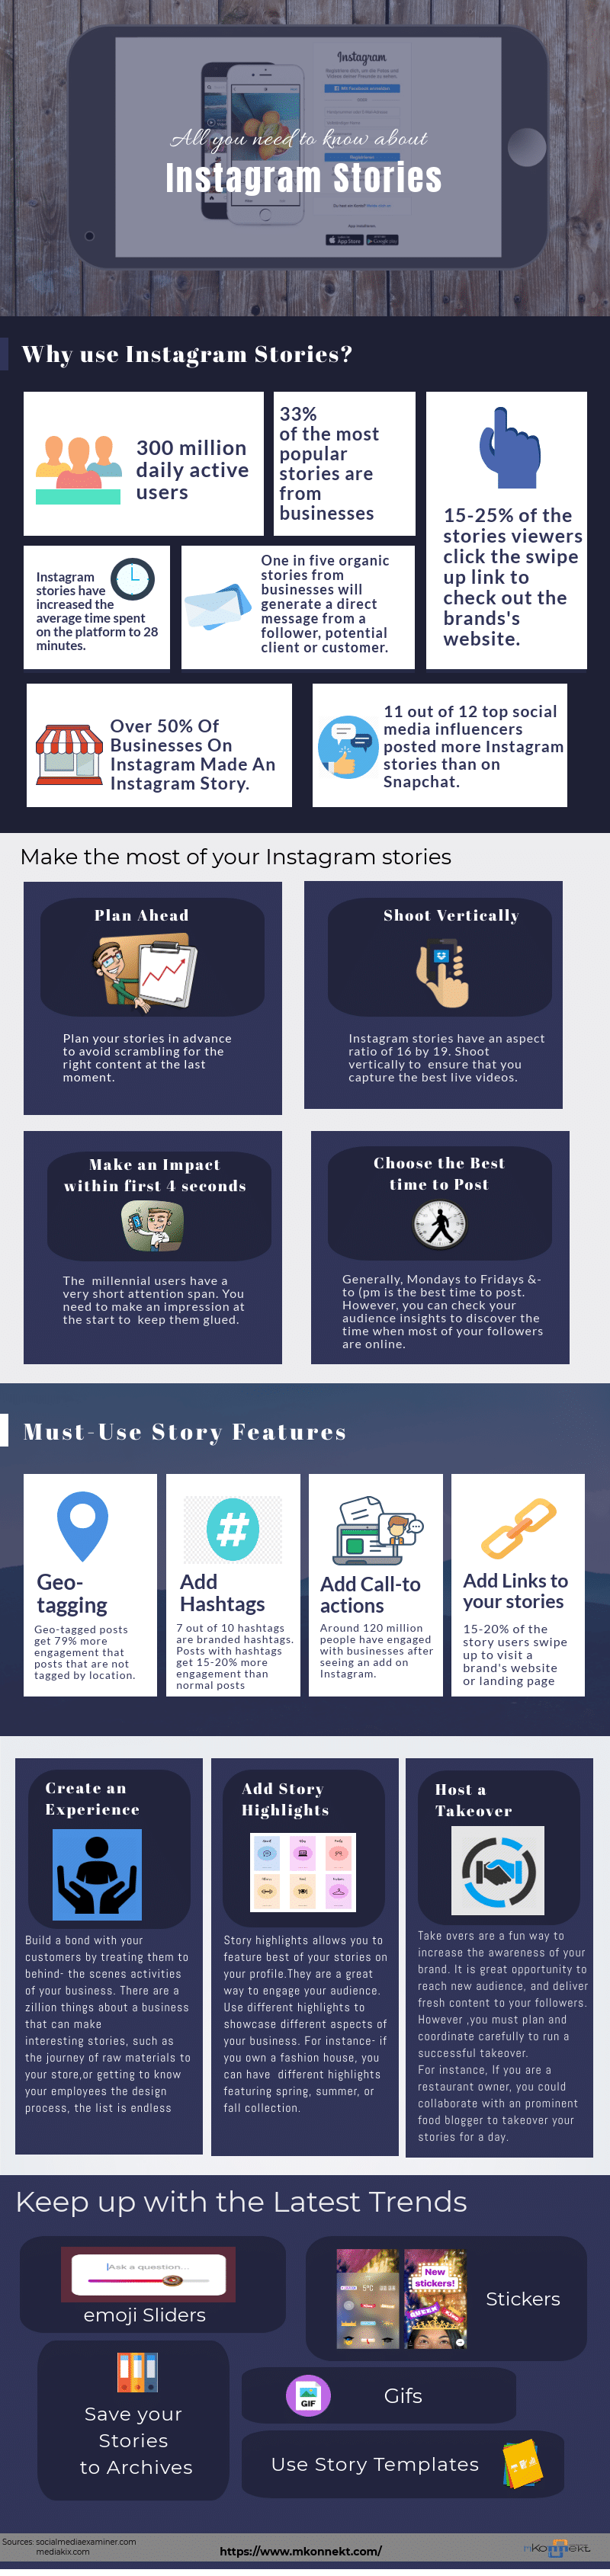 All you need to know about Instagram stories: infographic